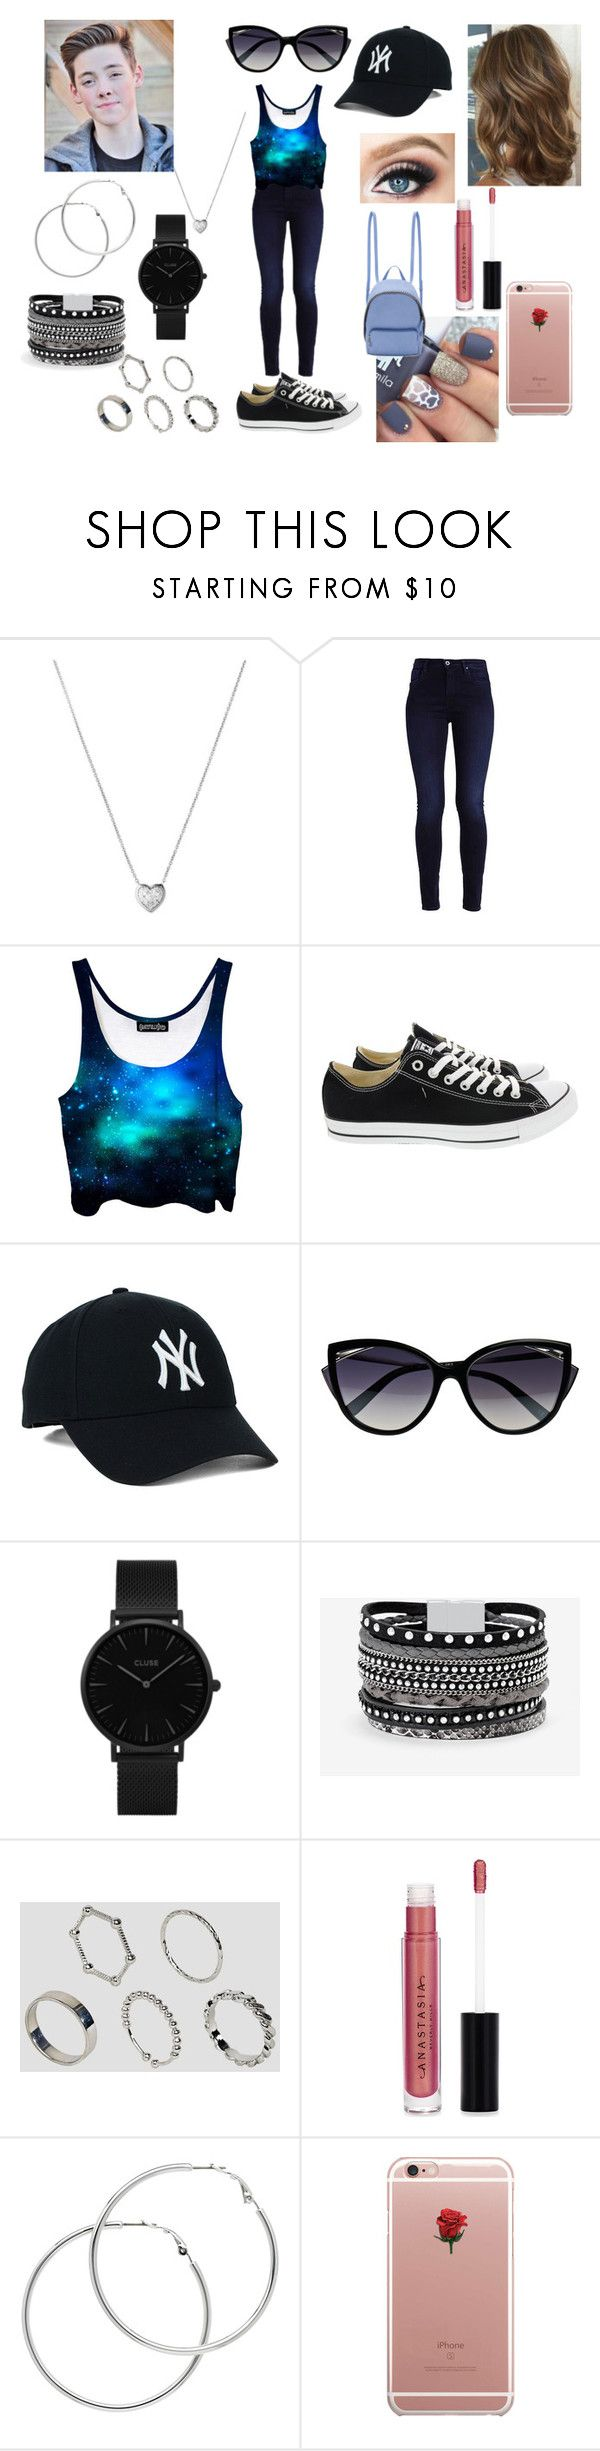 """""""Park Picnic Date With Zach Herron"""" by roxy-crushlings ❤ liked on Polyvore featuring Links of London, Converse, La Perla, CLUSE, White House Black Market, ASOS, Anastasia Beverly Hills, Melissa Odabash, ETUÍ and STELLA McCARTNEY"""